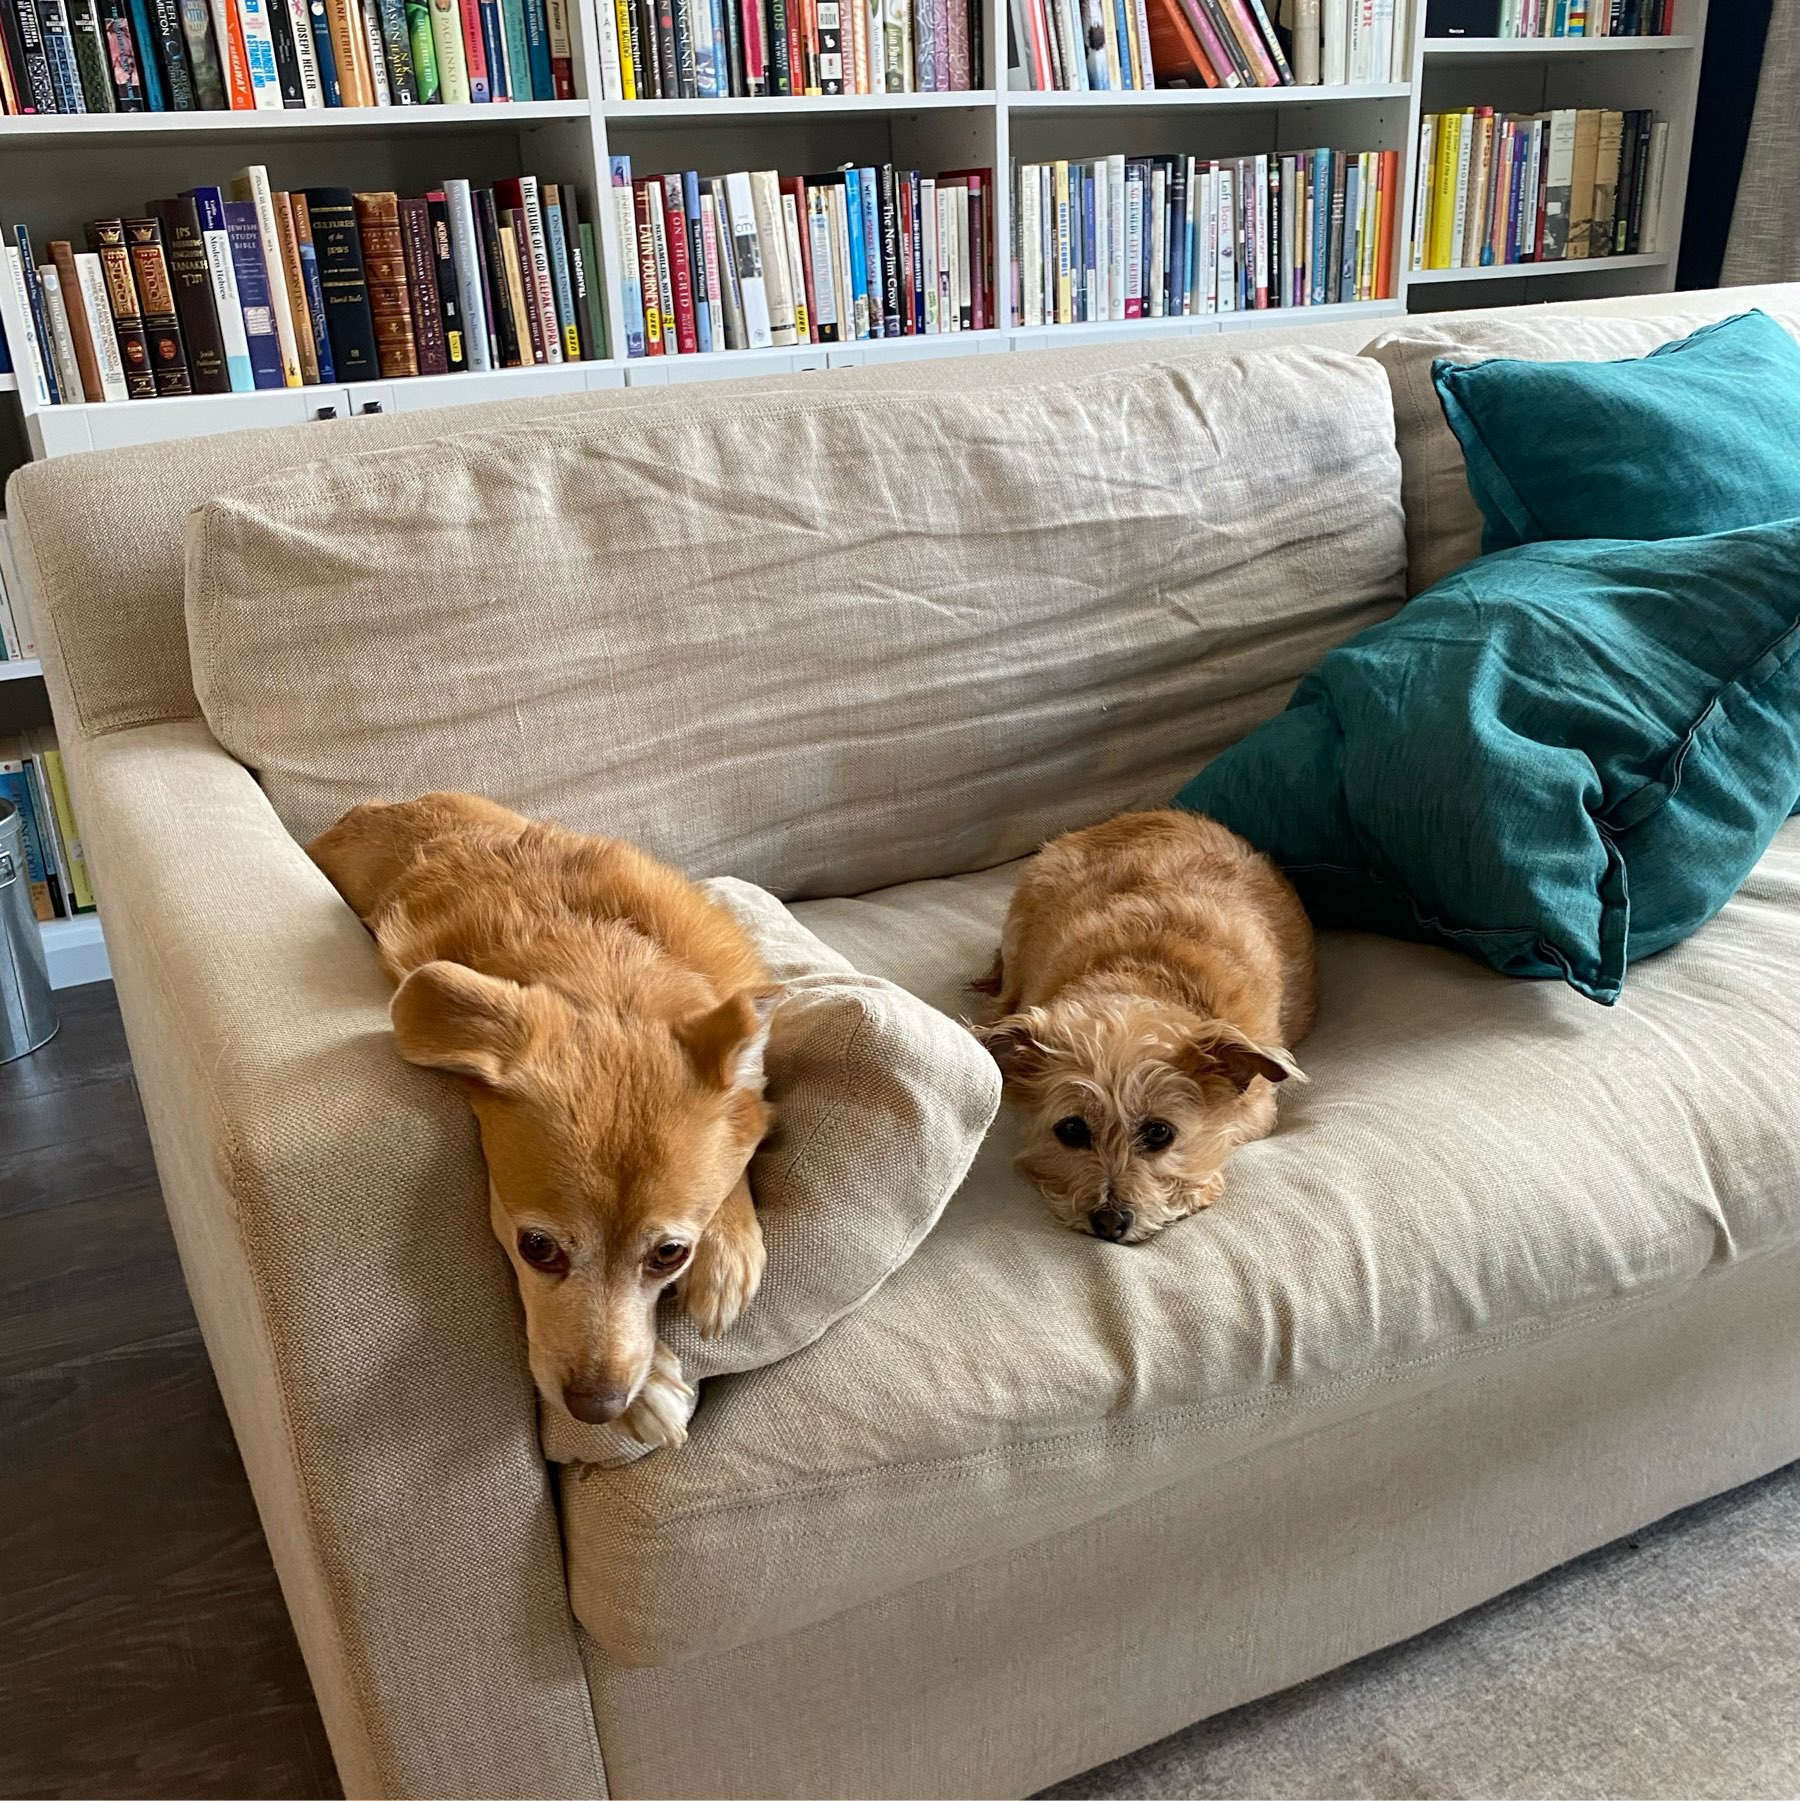 Two dogs lying beside each other on a beige couch in front of a bookcase.